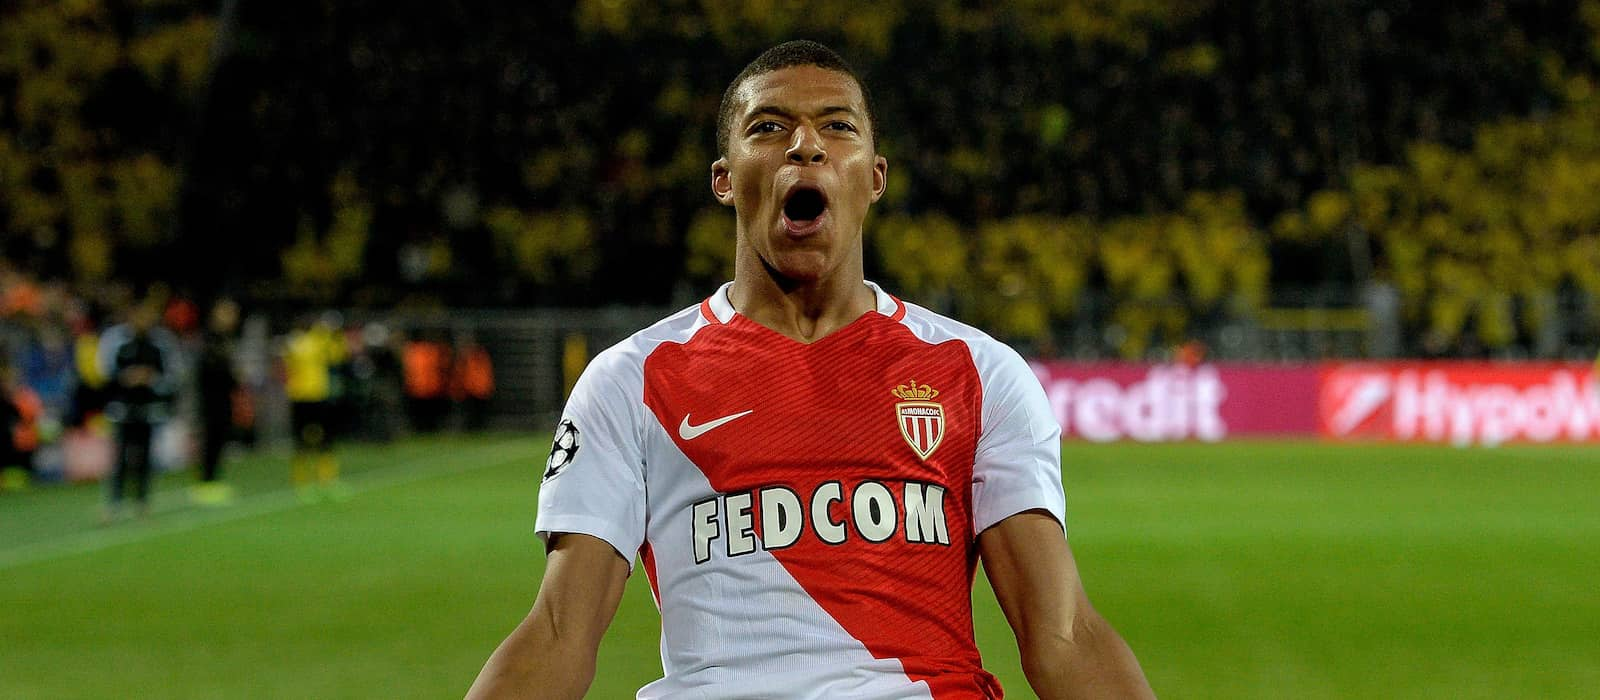 Manchester United ready to splash the cash on PSG's Kylian Mbappe: report